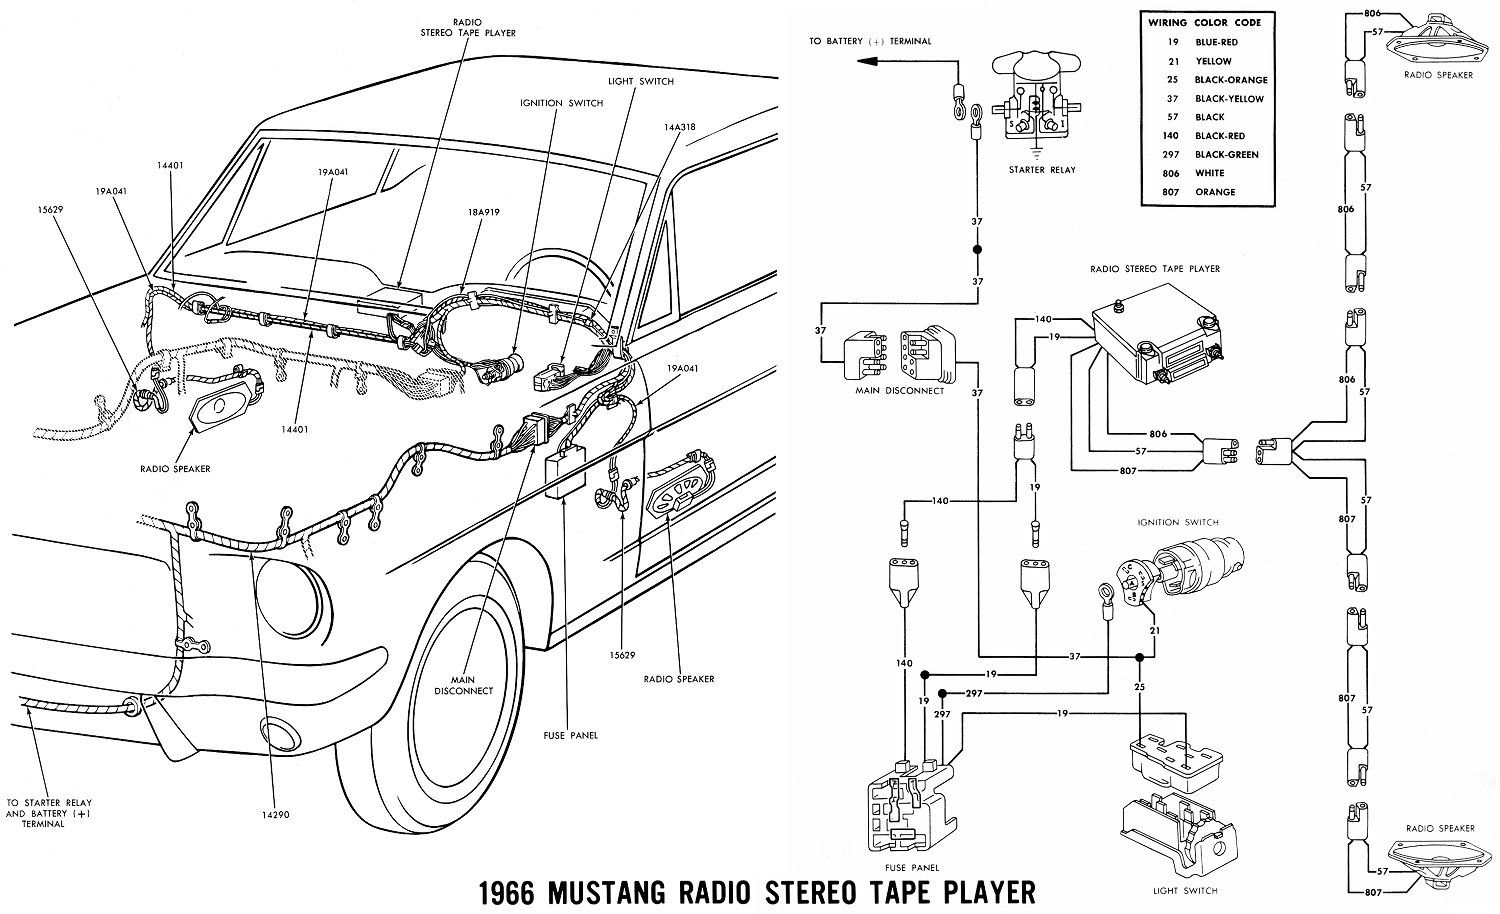 1966 Mustang Radio Wiring Tech Tips Diagrams. 1966 F100 Wiring Harness Manual Guide Diagram U2022 Rh Afriquetopnews 1965 Mustang Radio. Wiring. 1969 Mustang Engine Vacuum Diagram At Scoala.co